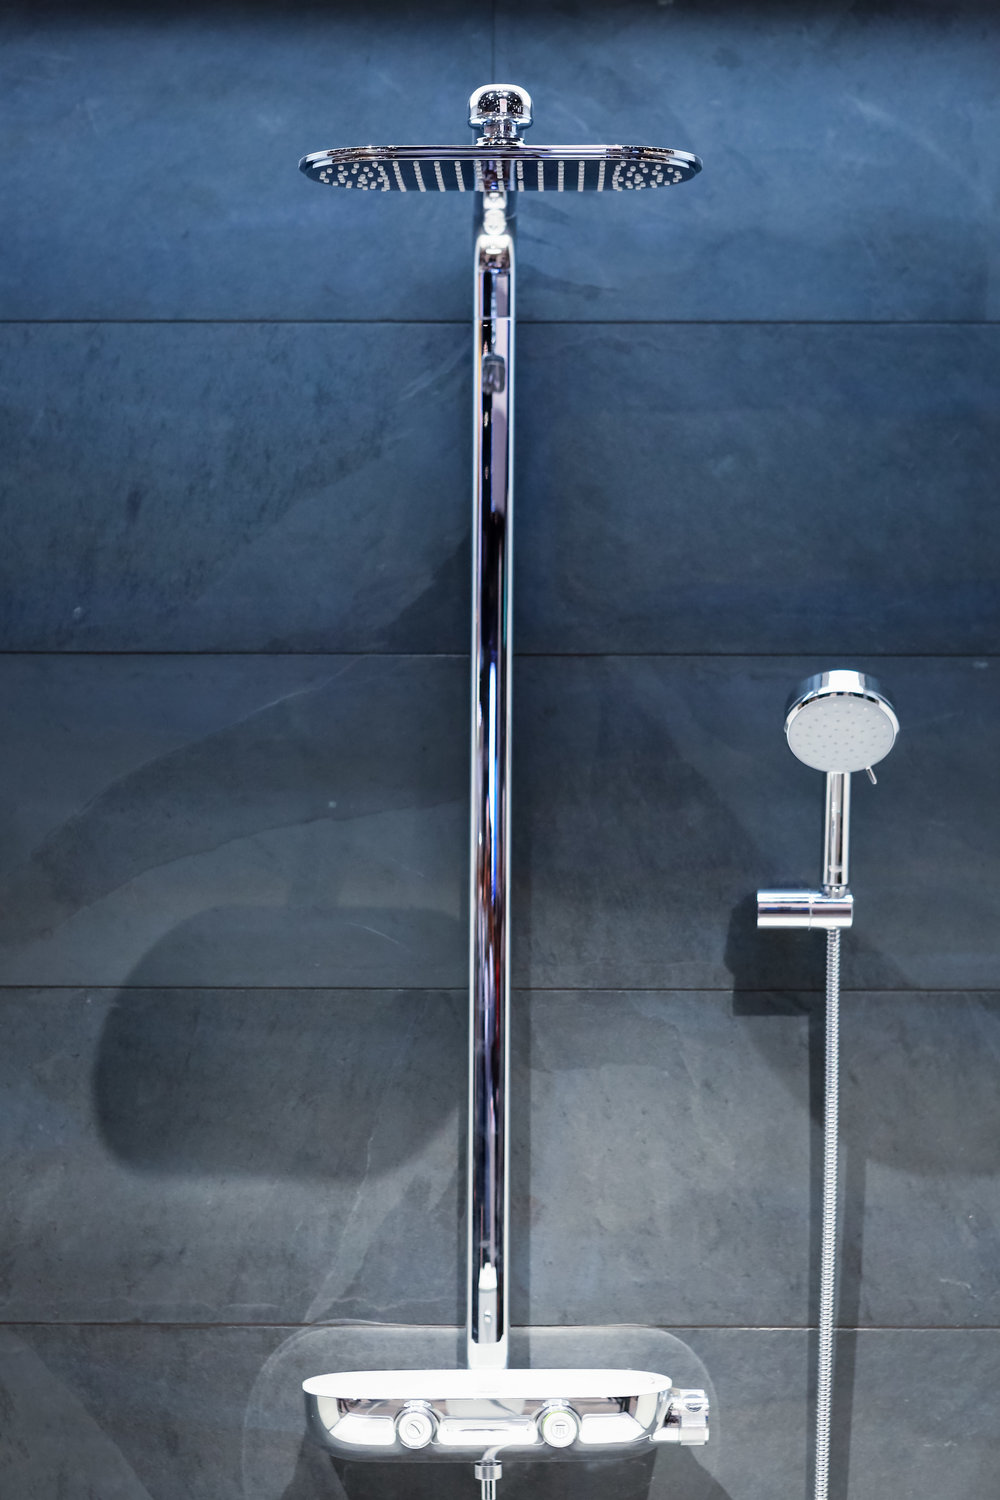 Grohe SmartControl RainShower. Photo by Felix O.B./FXO Photography.